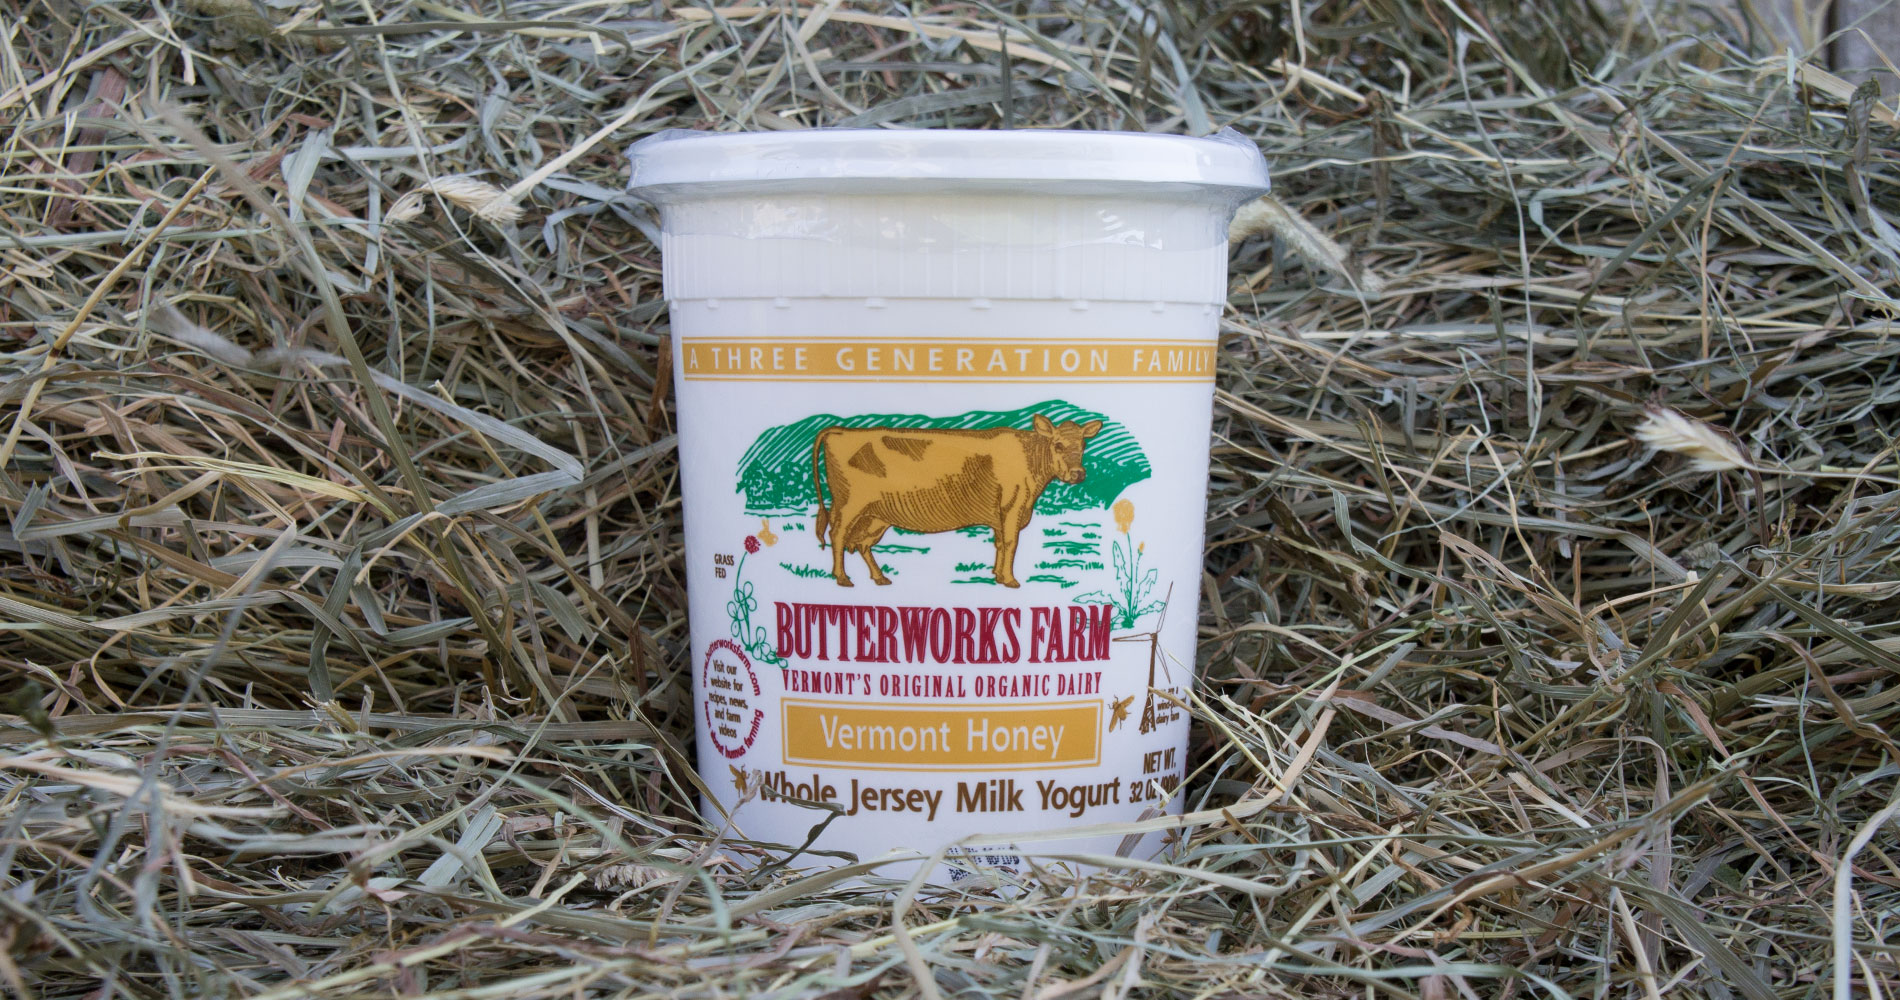 Butterworks Farm Vermont Honey Yogurt